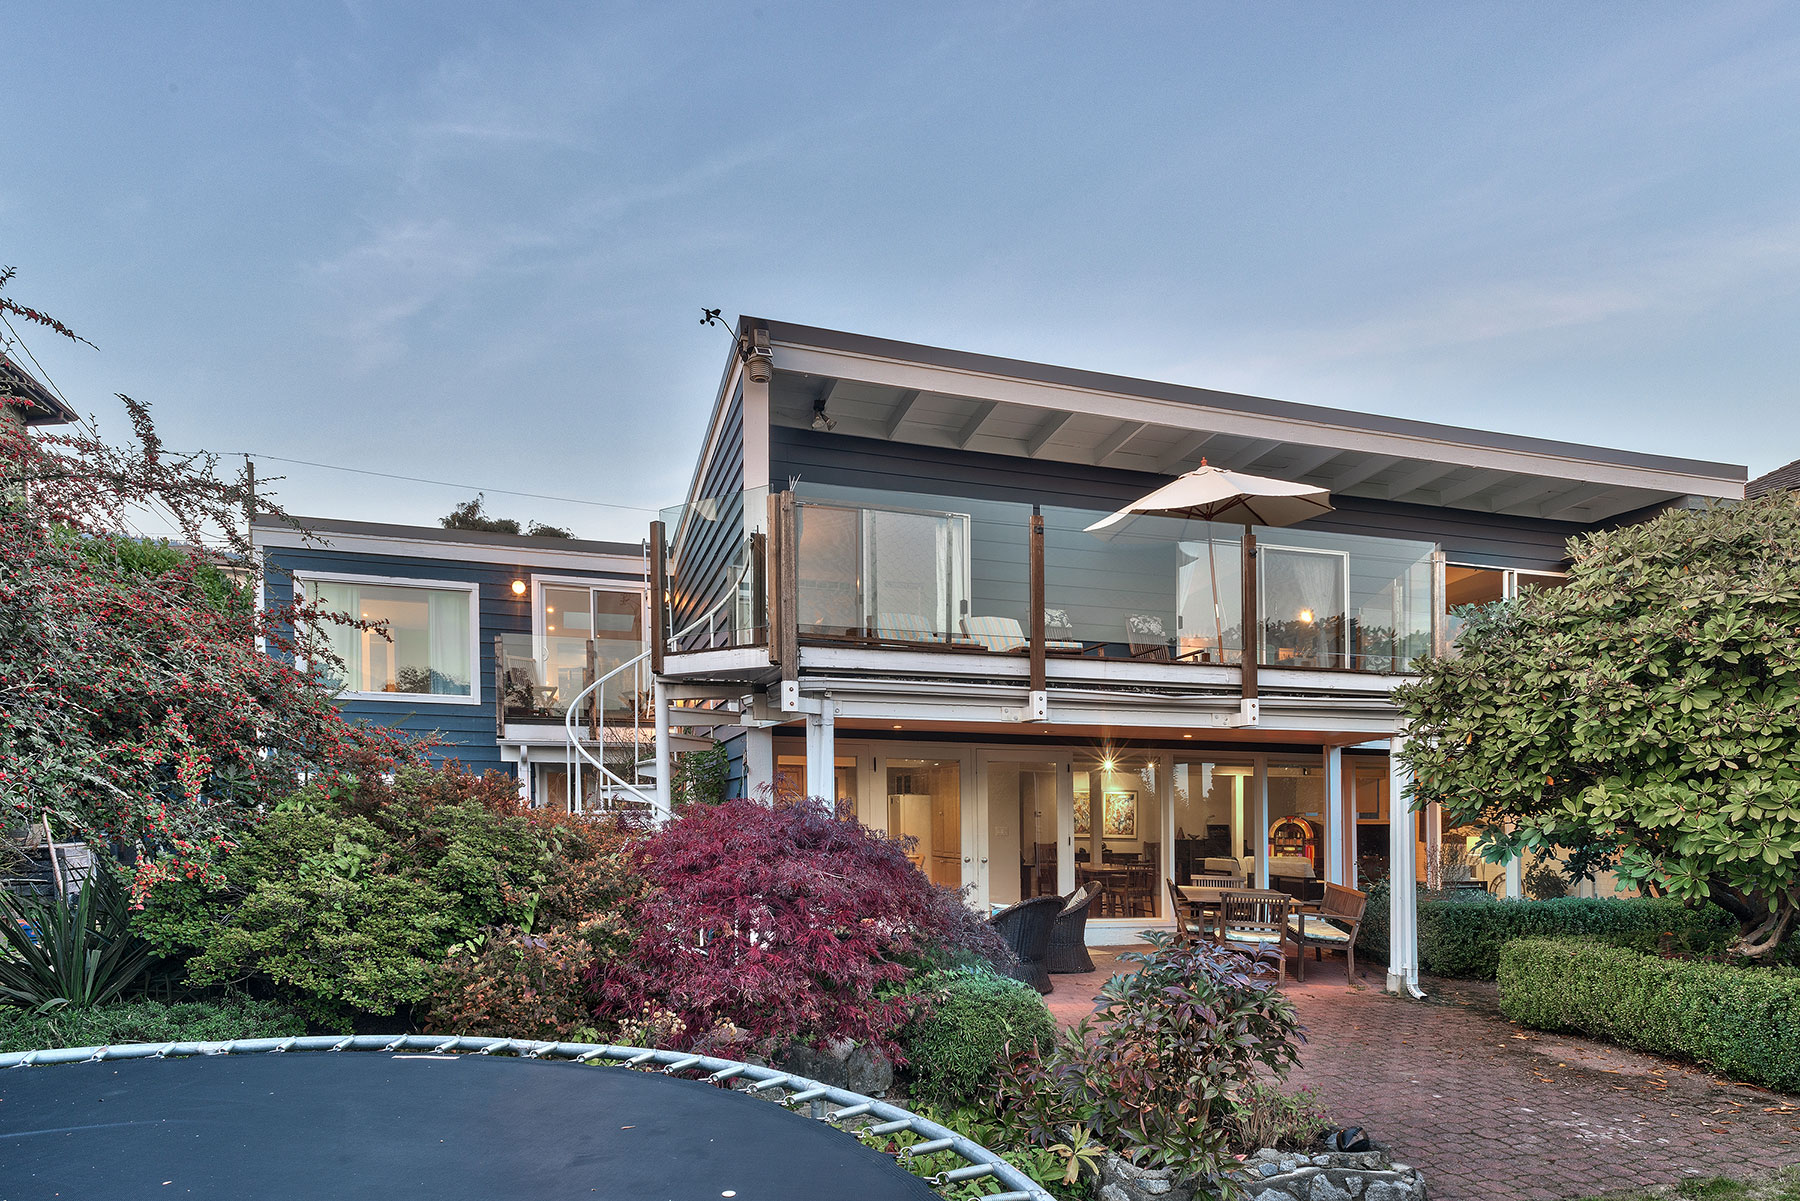 1460-Lawson-Ave-West-Vancouver-360hometours-27s.jpg